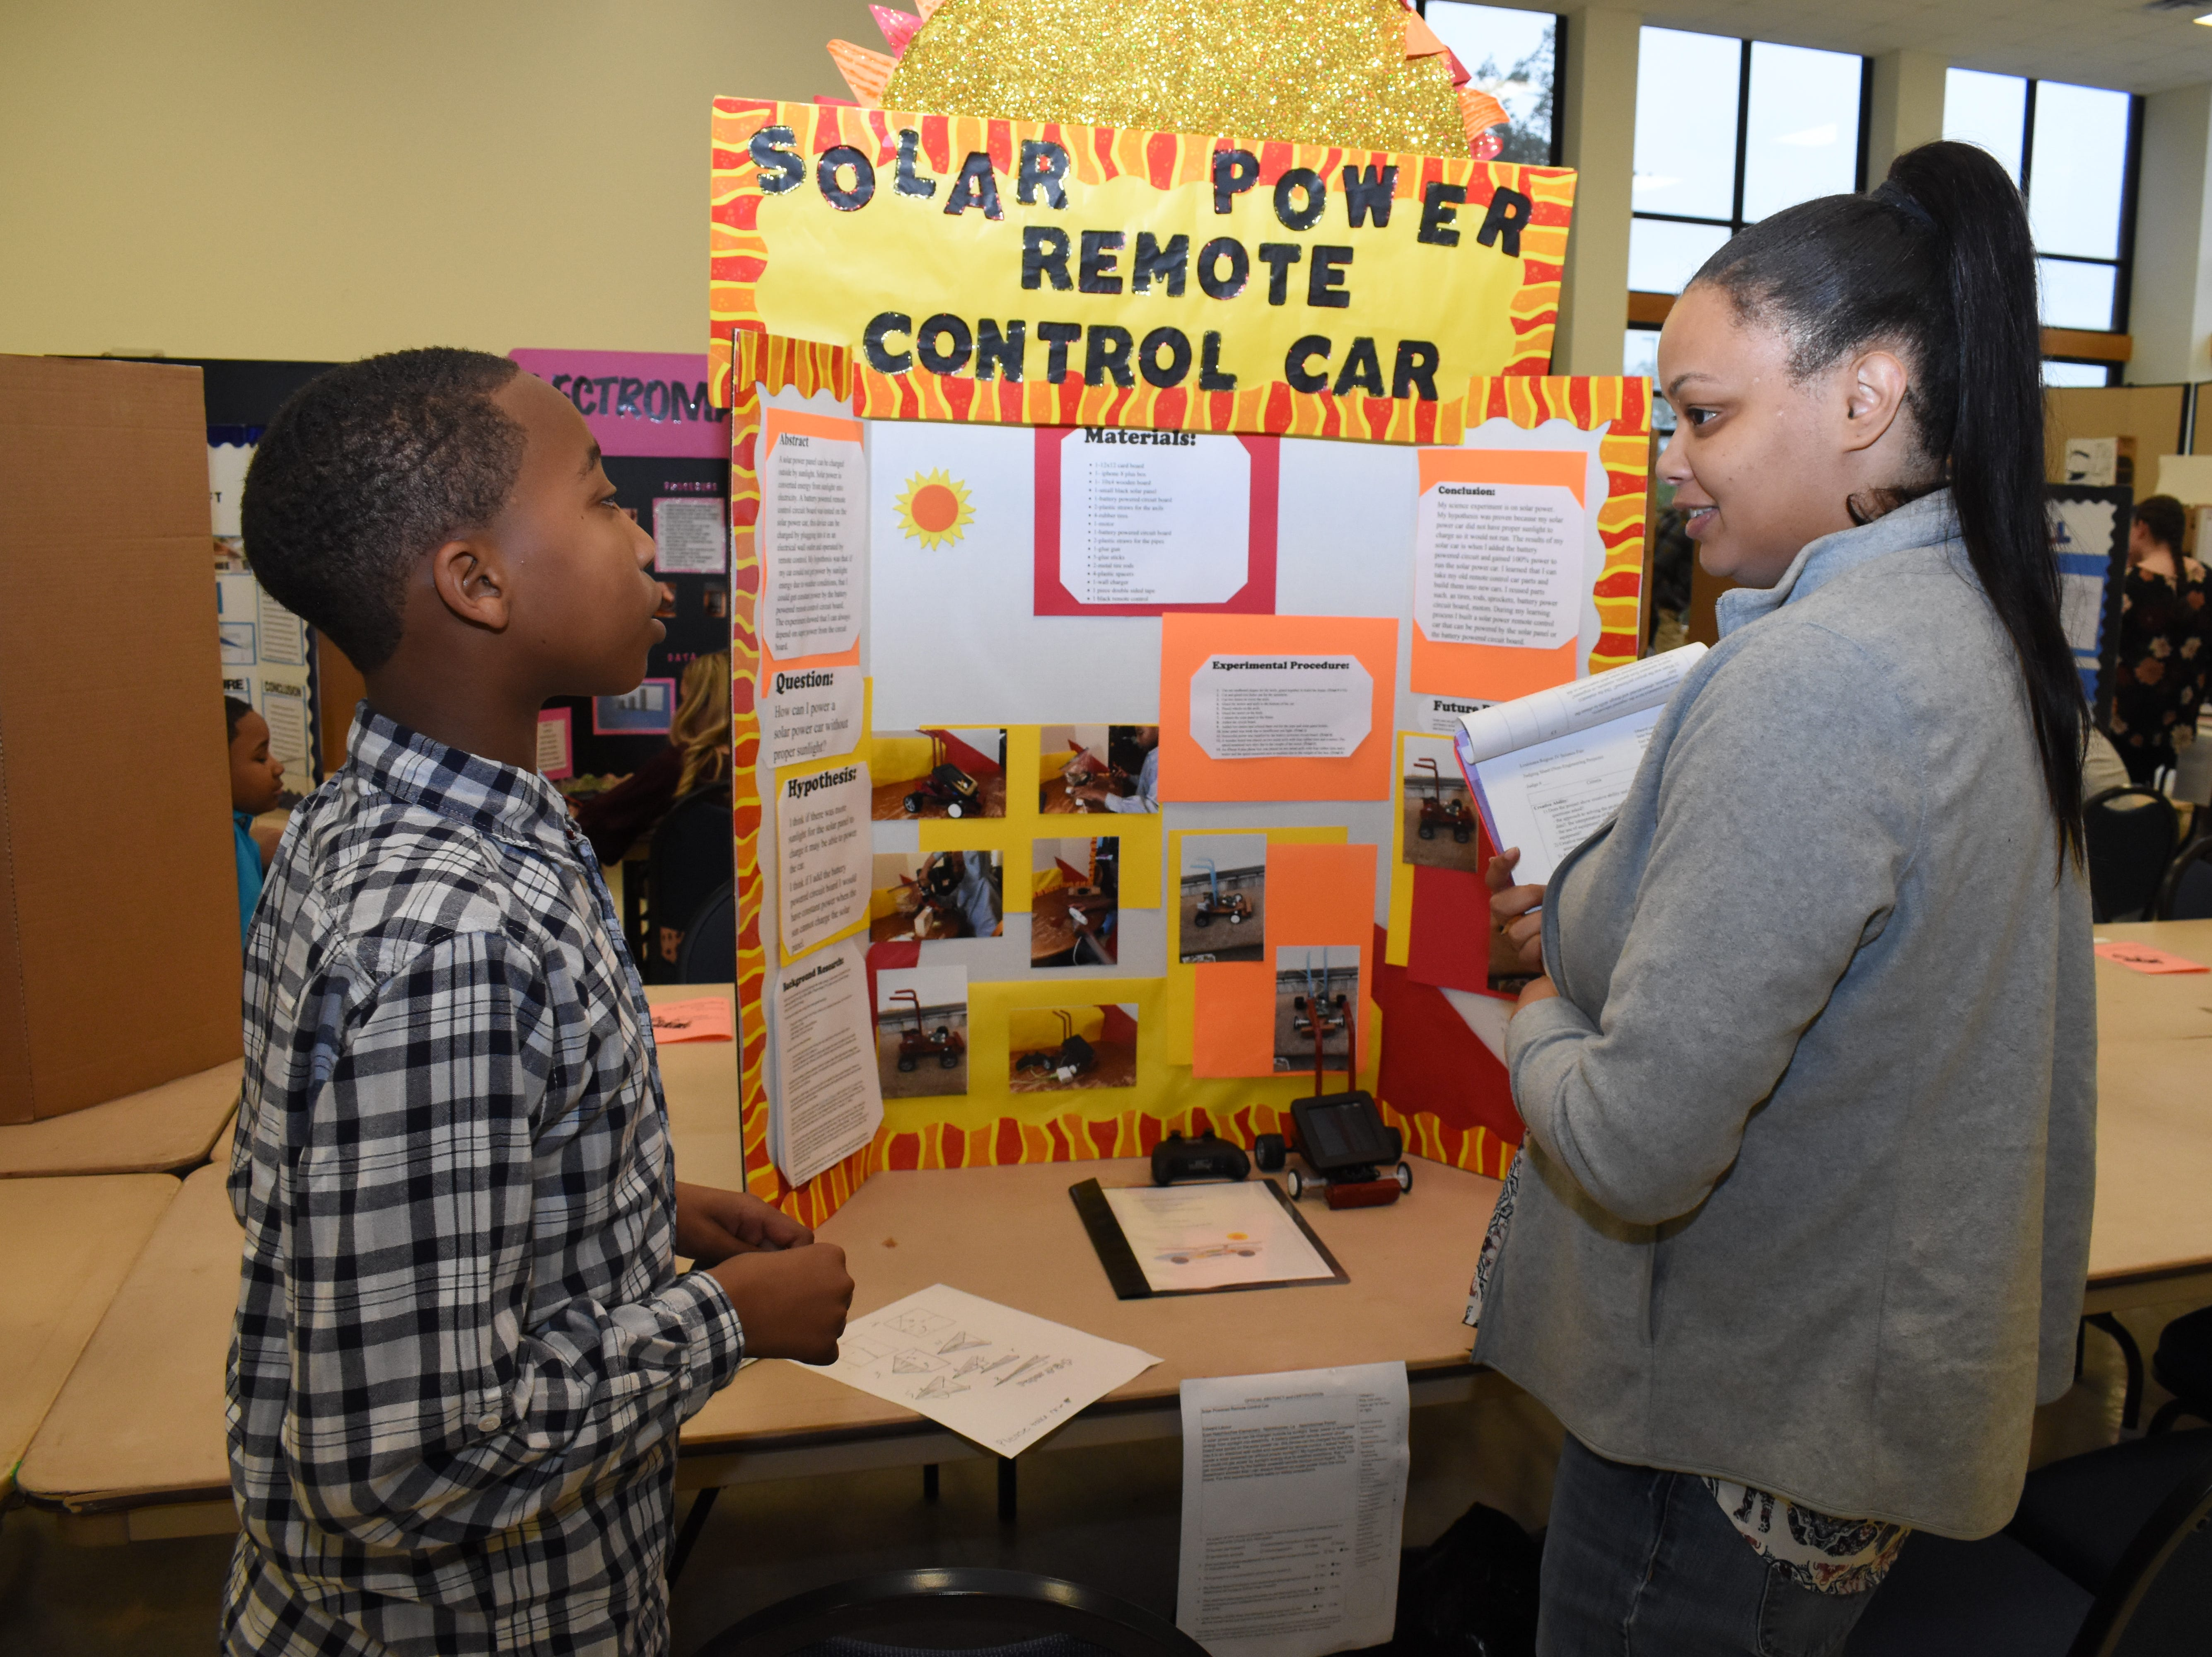 Edward LaCour (left), a fifth-grader from East Natchitoches Elementary and Middle School, presents his science project on a solar powered remote control car to Davida Crossley who was one of the judges for the Louisiana Region IV Science and Engineering Fair held Saturday, Feb. 16, 2019 at Louisiana State University of Alexandria. Students from Grant, Avoyelles, and Rapides parishes competed in numerous categories. Students displayed project boards and presented experiments to the judges.